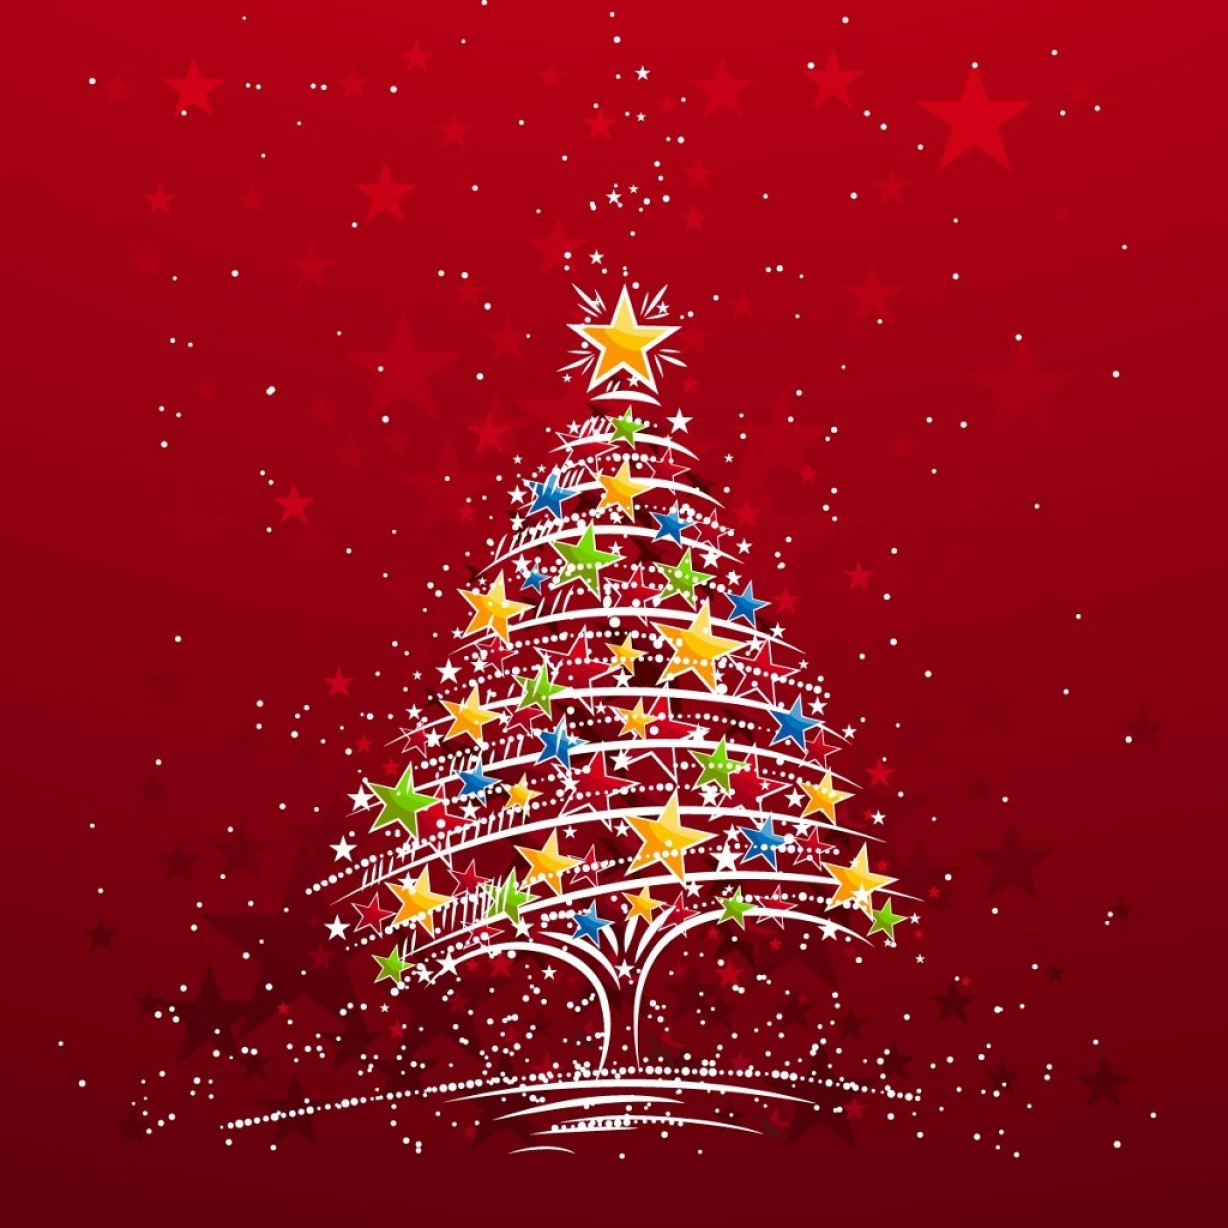 Best Free Christmas Clip Art Backgrounds-Best Free Christmas Clip Art Backgrounds Image-0